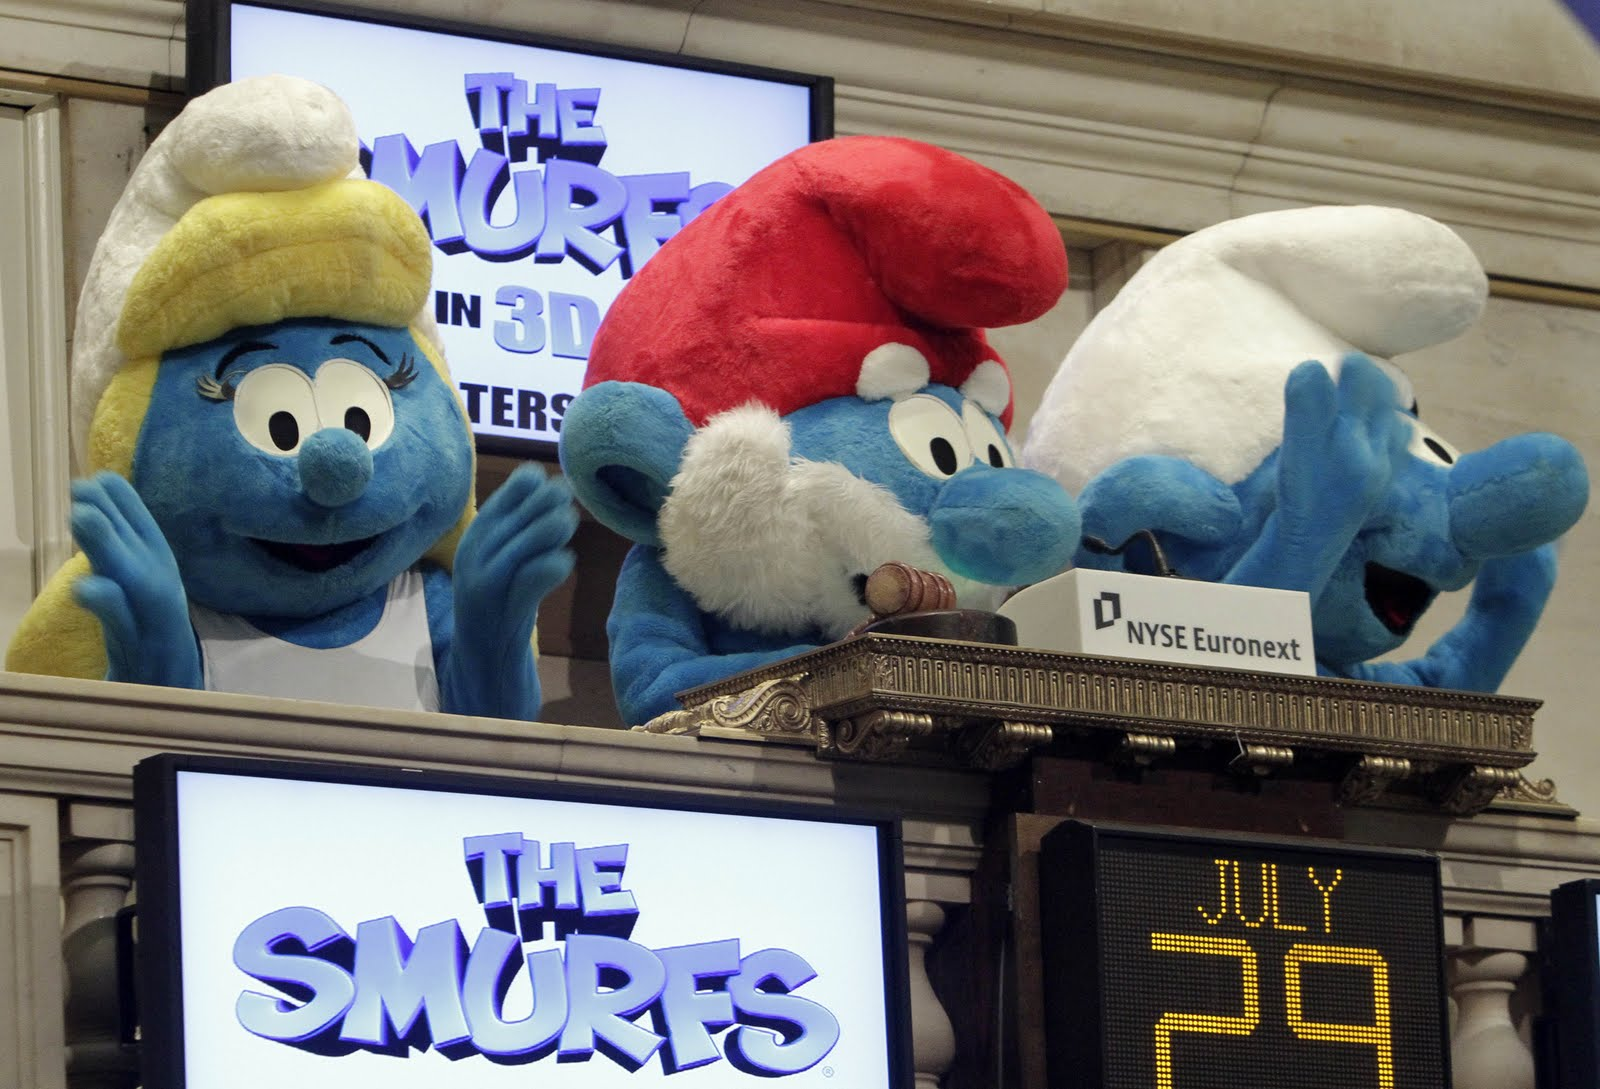 Smurfs on Wall Street